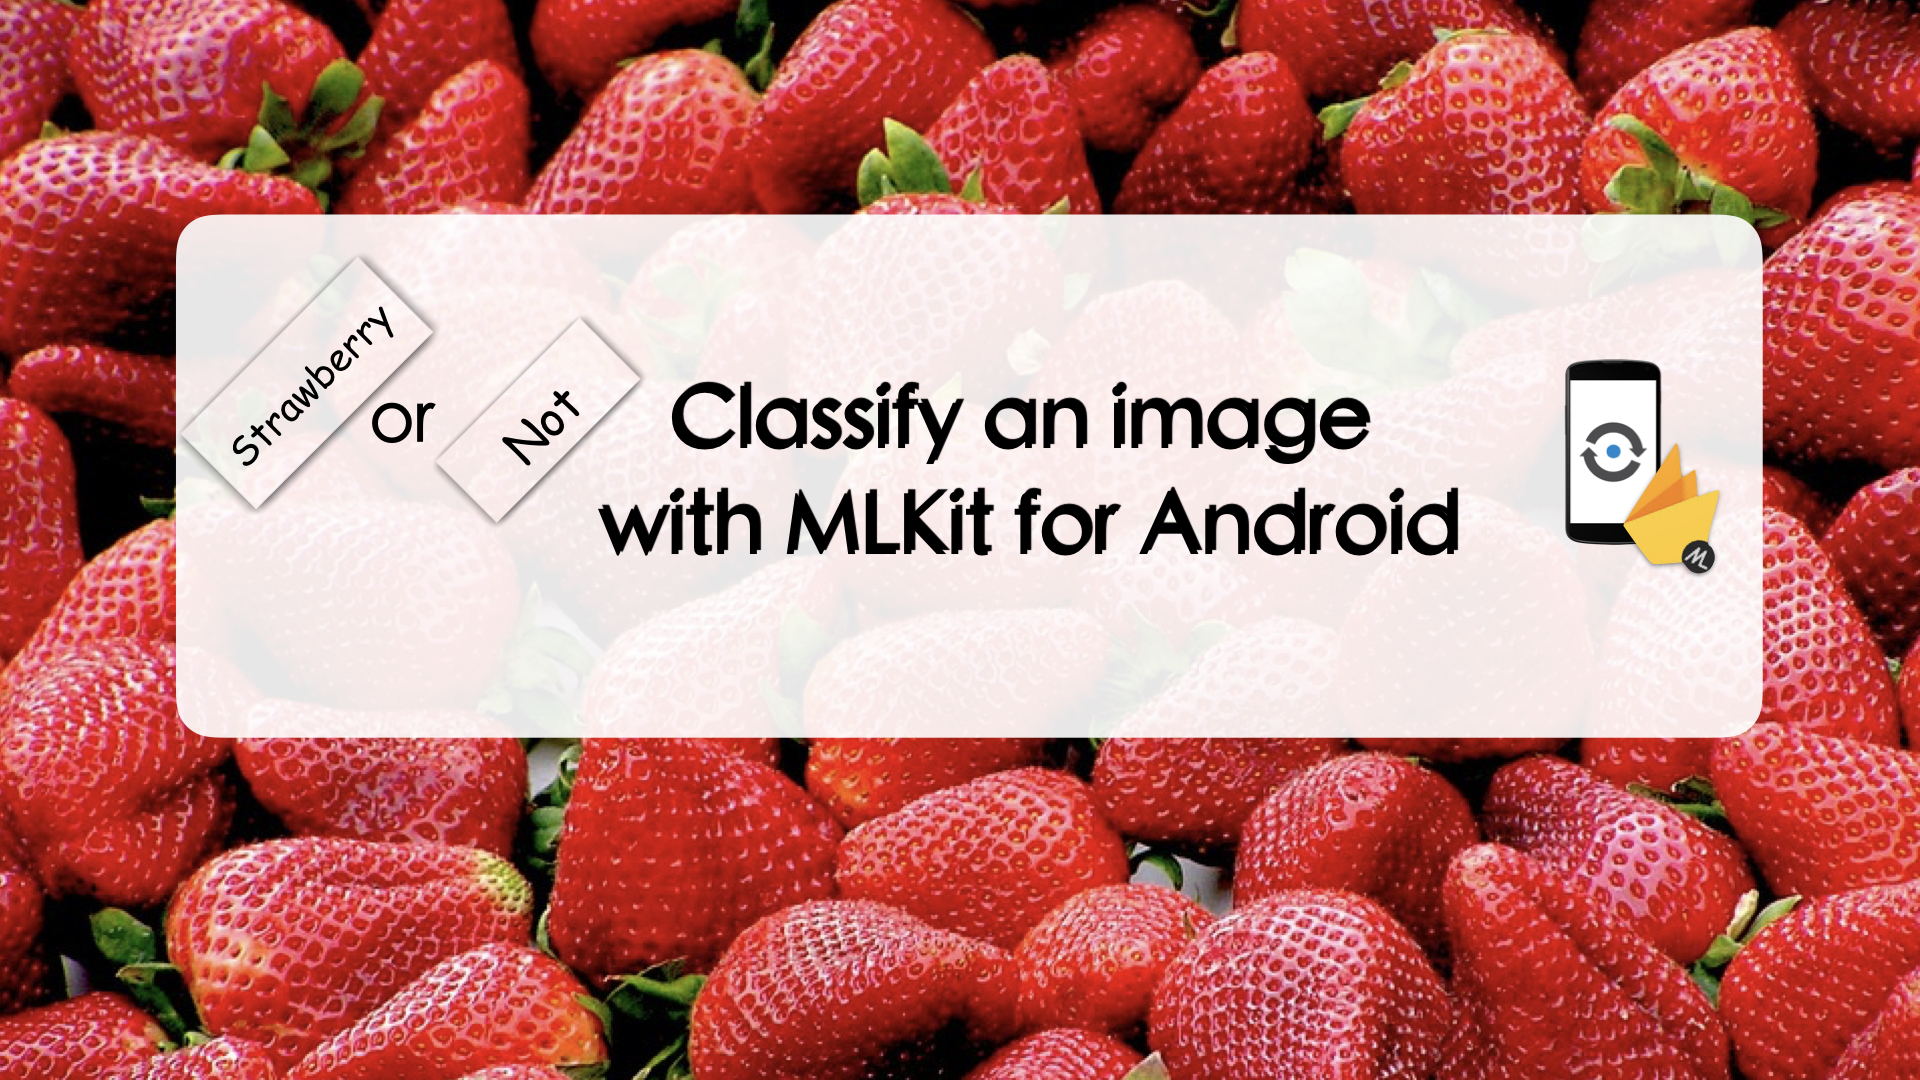 A Strawberry Or Not? Classify an Image with MLKit for Android